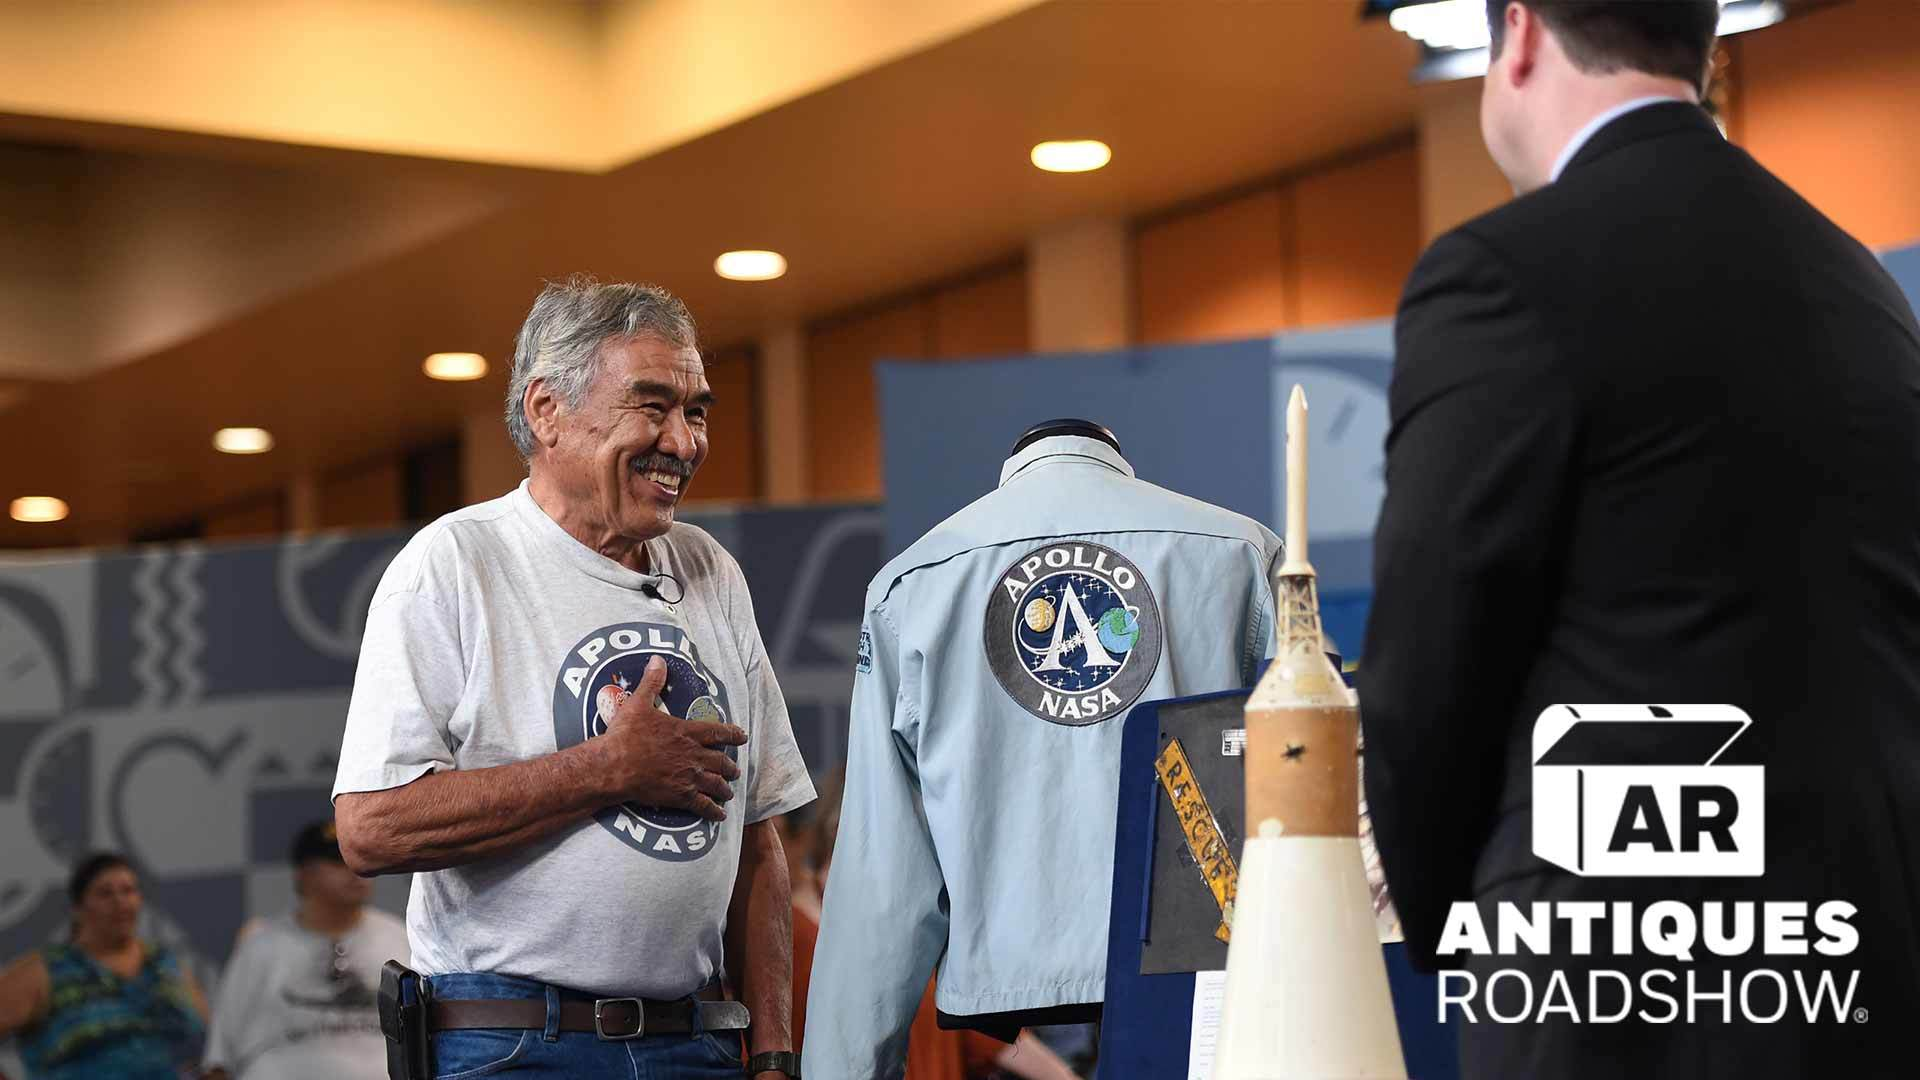 Image from Antiques Roadshow Out of This World